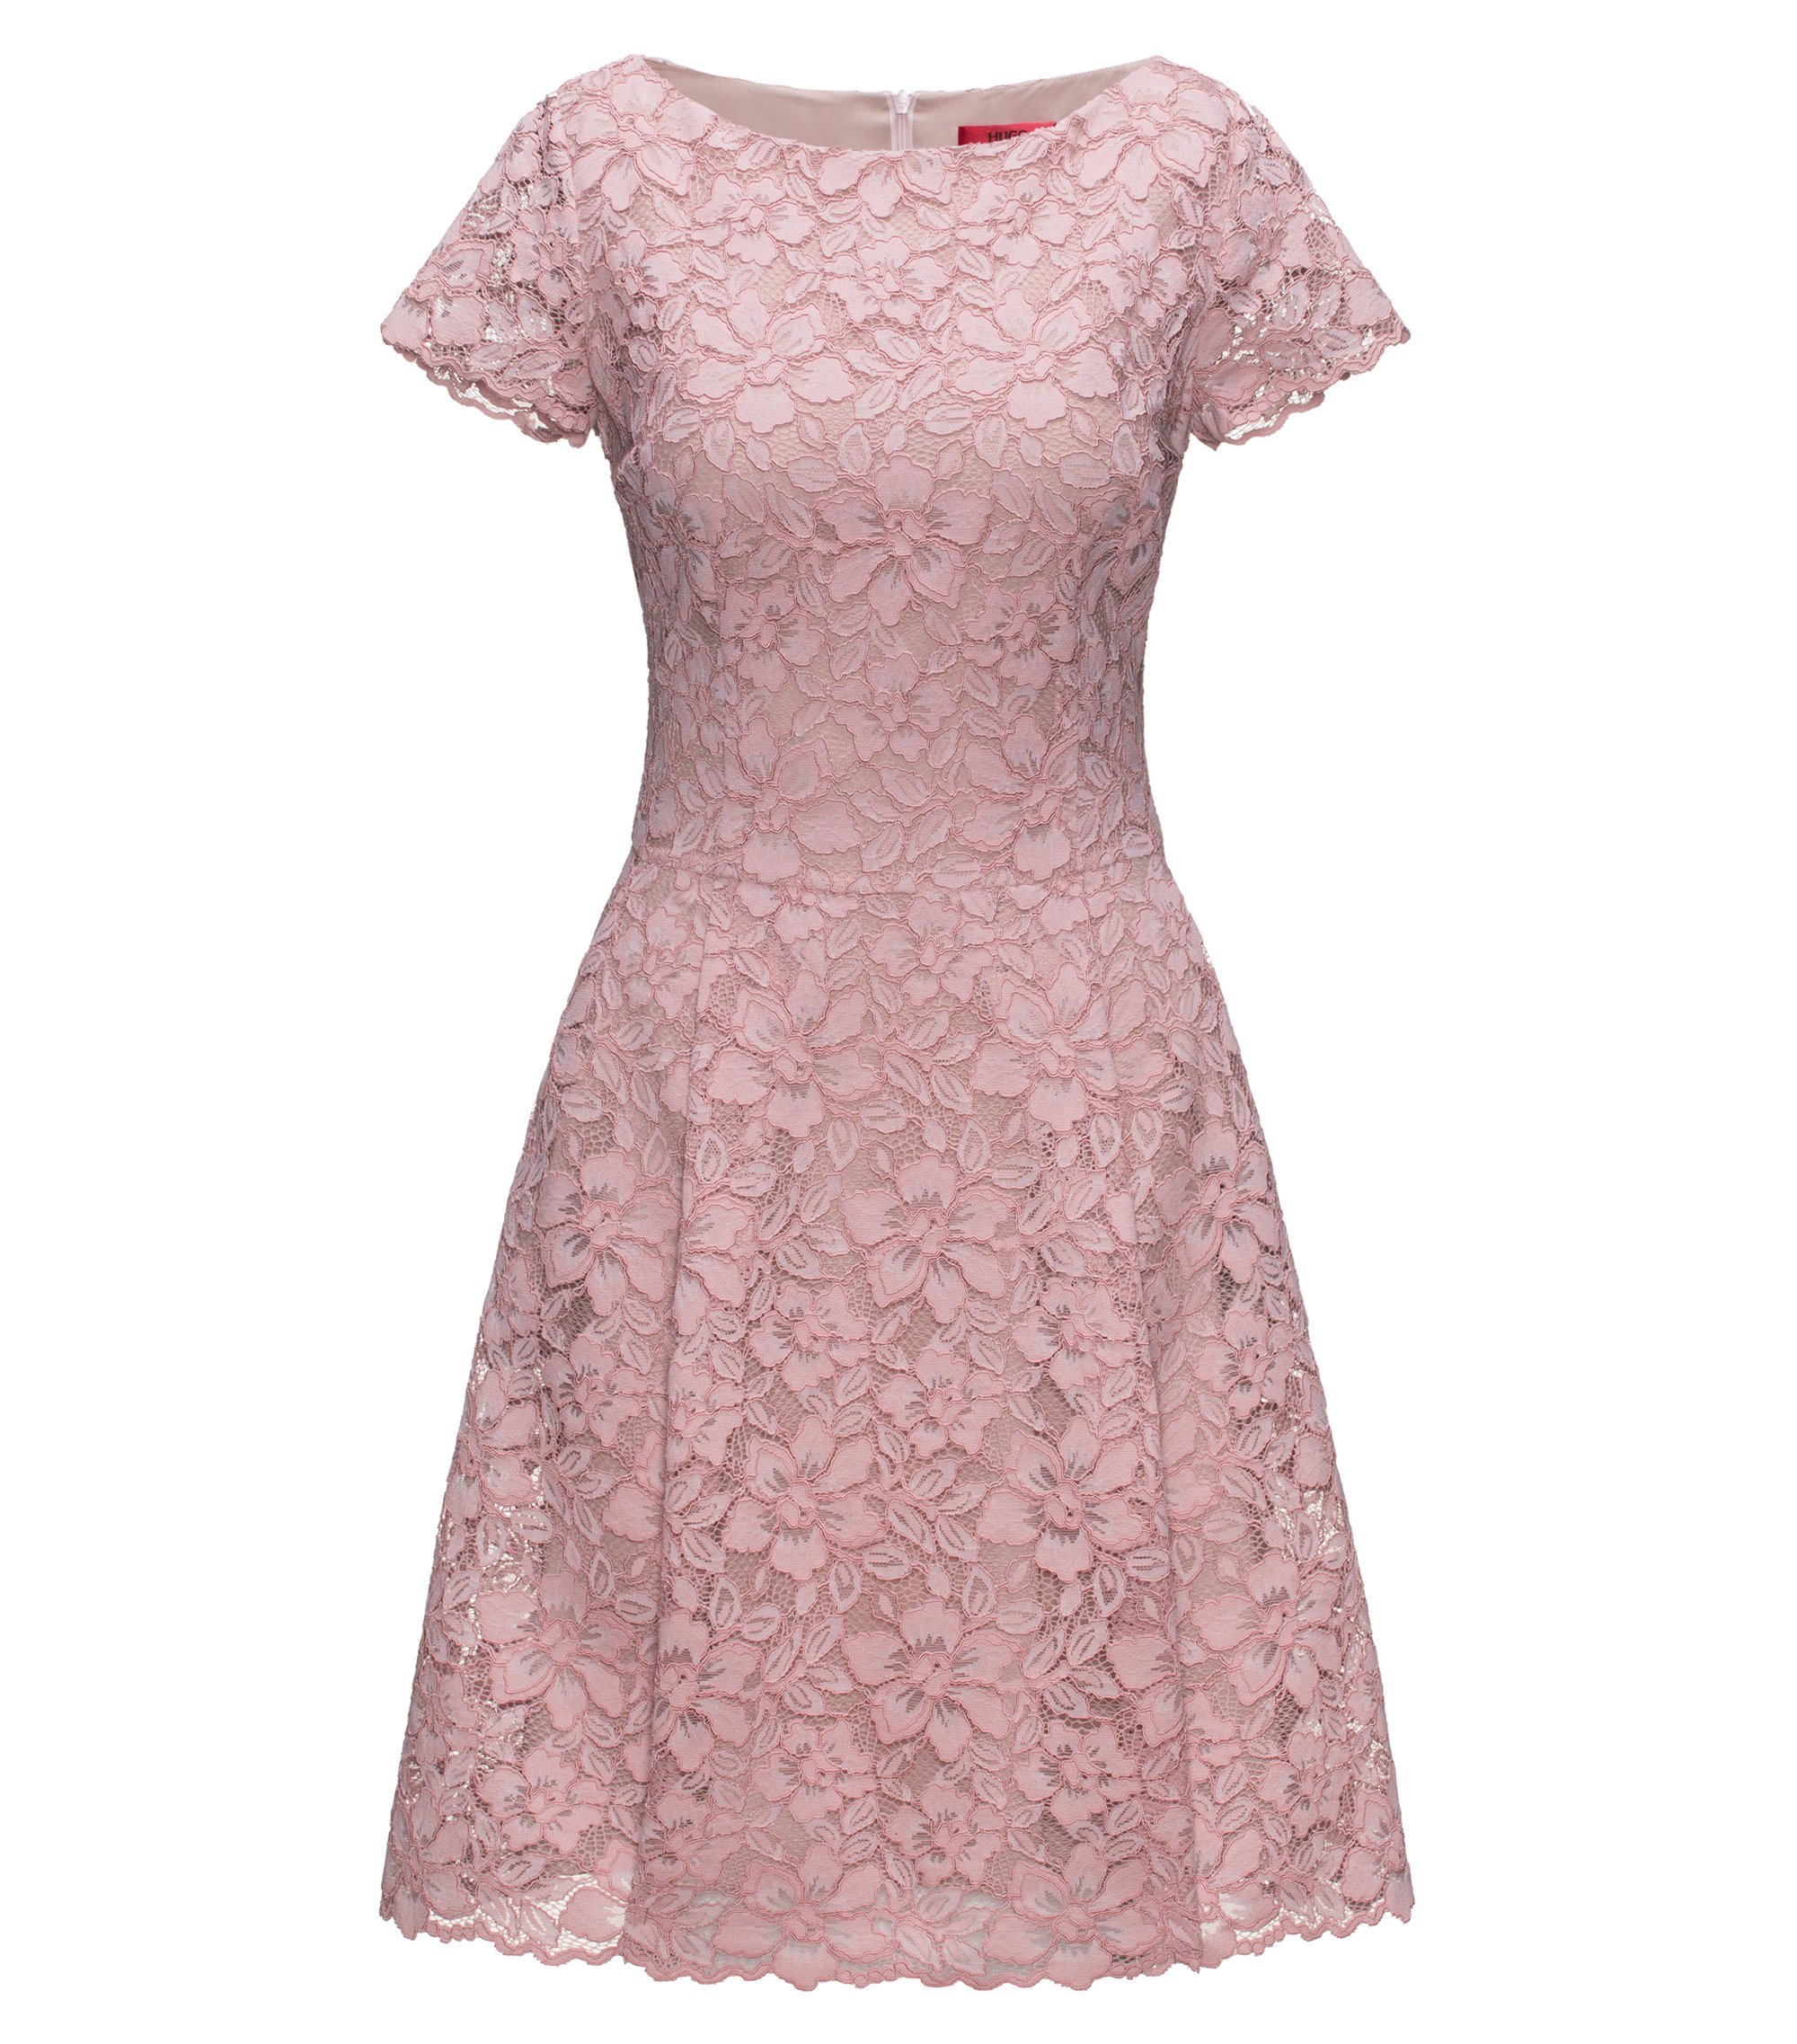 Regular-fit dress in floral lace, light pink